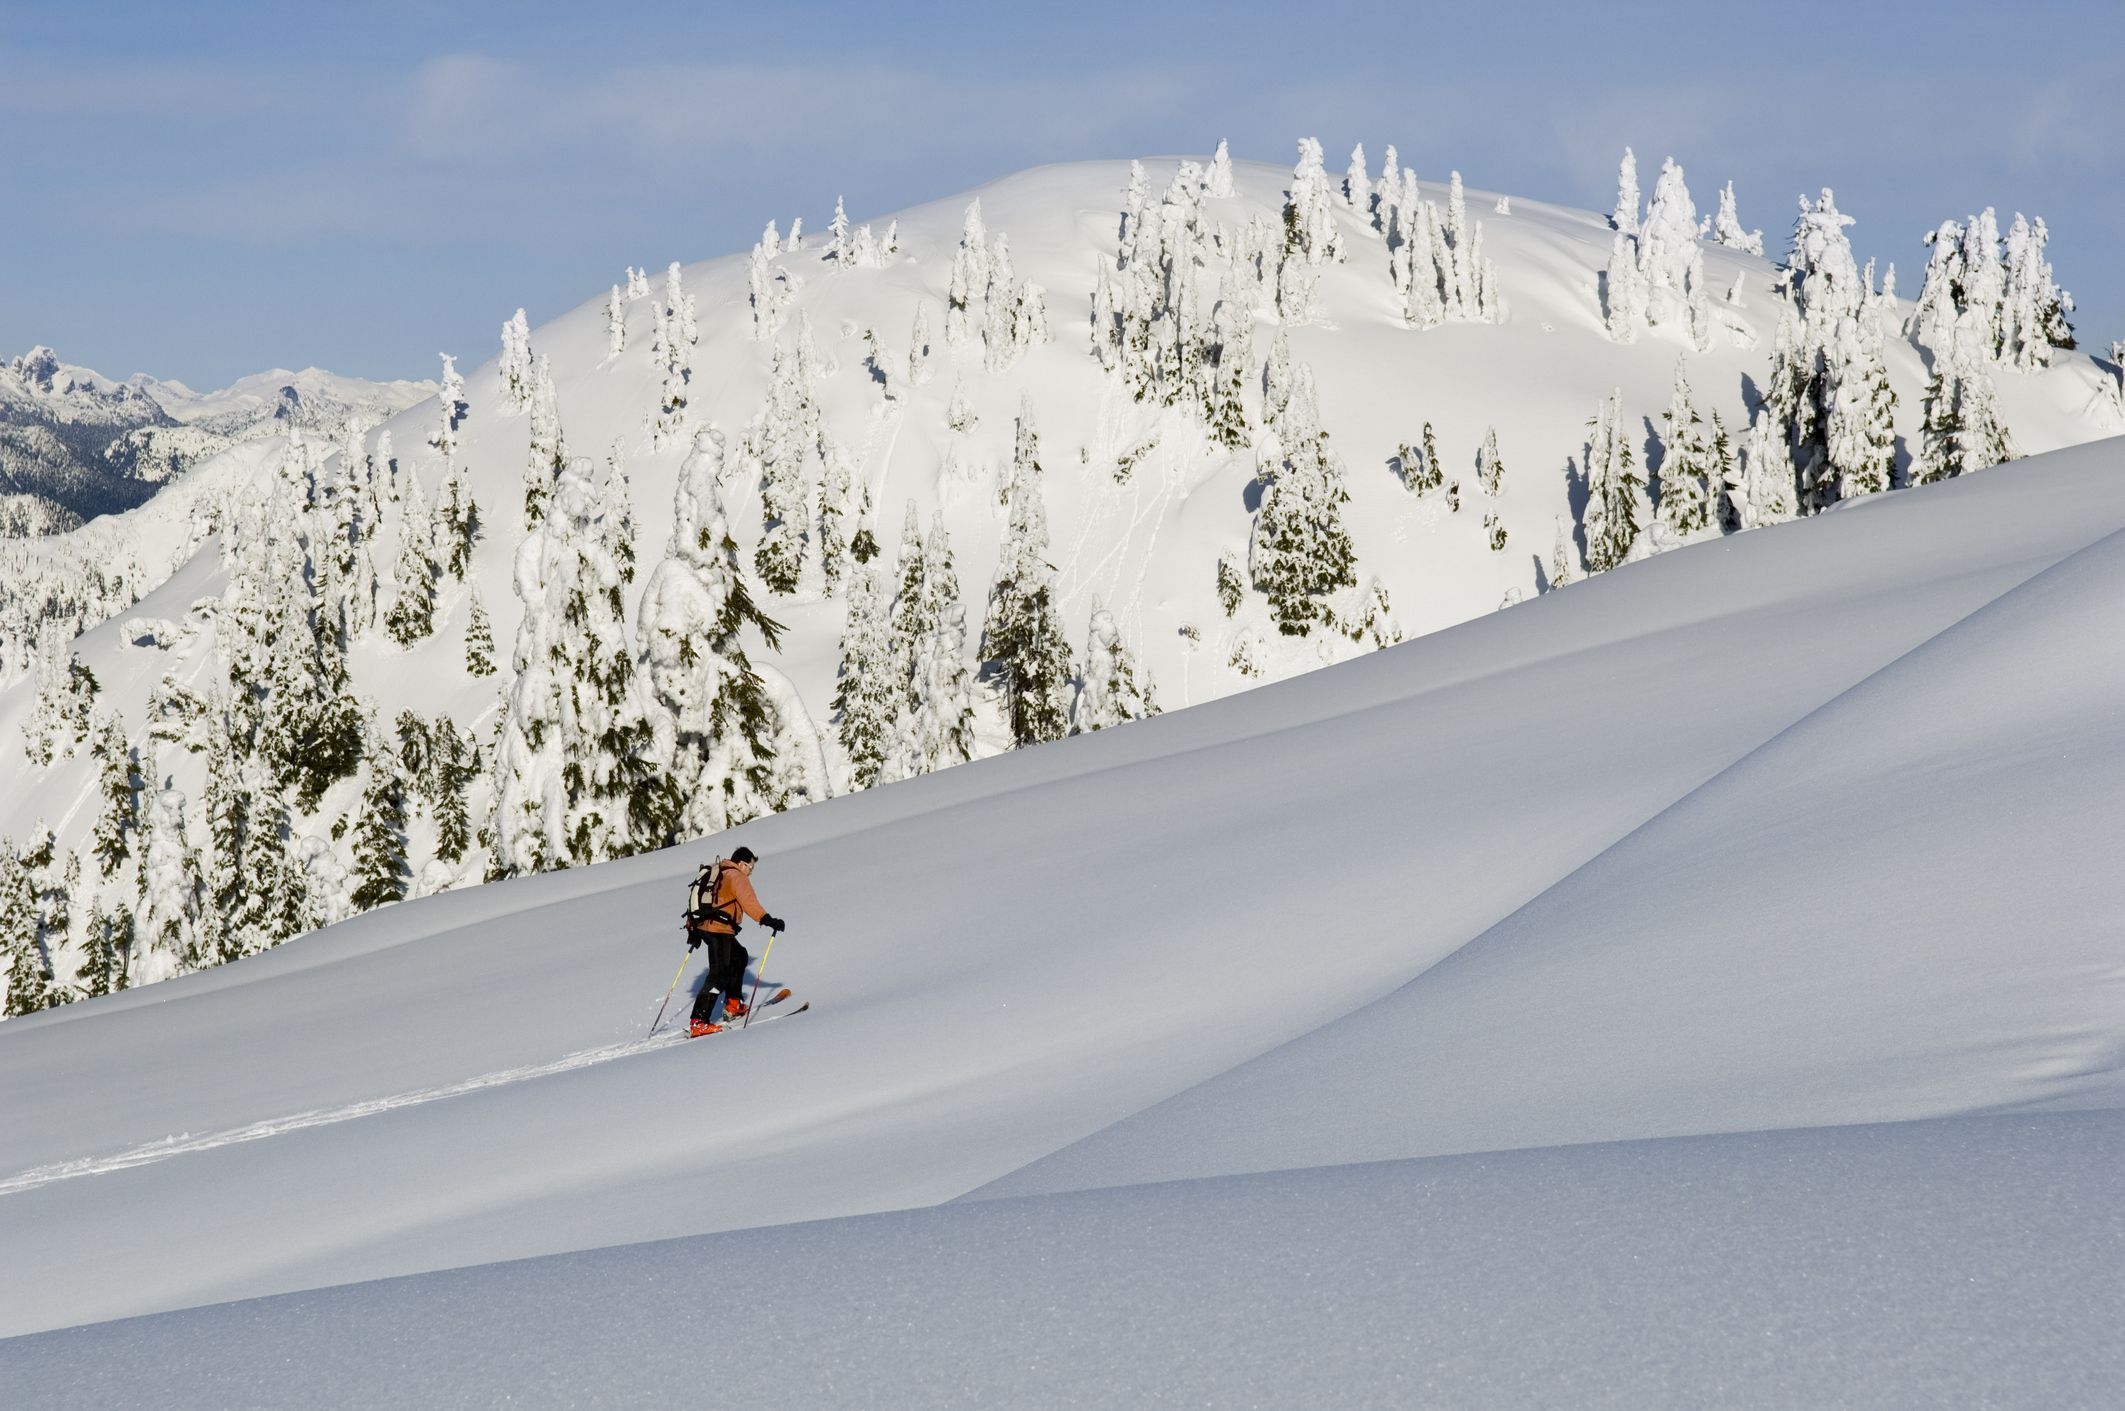 Cypress Mountain Ski Resort: The Complete Guide